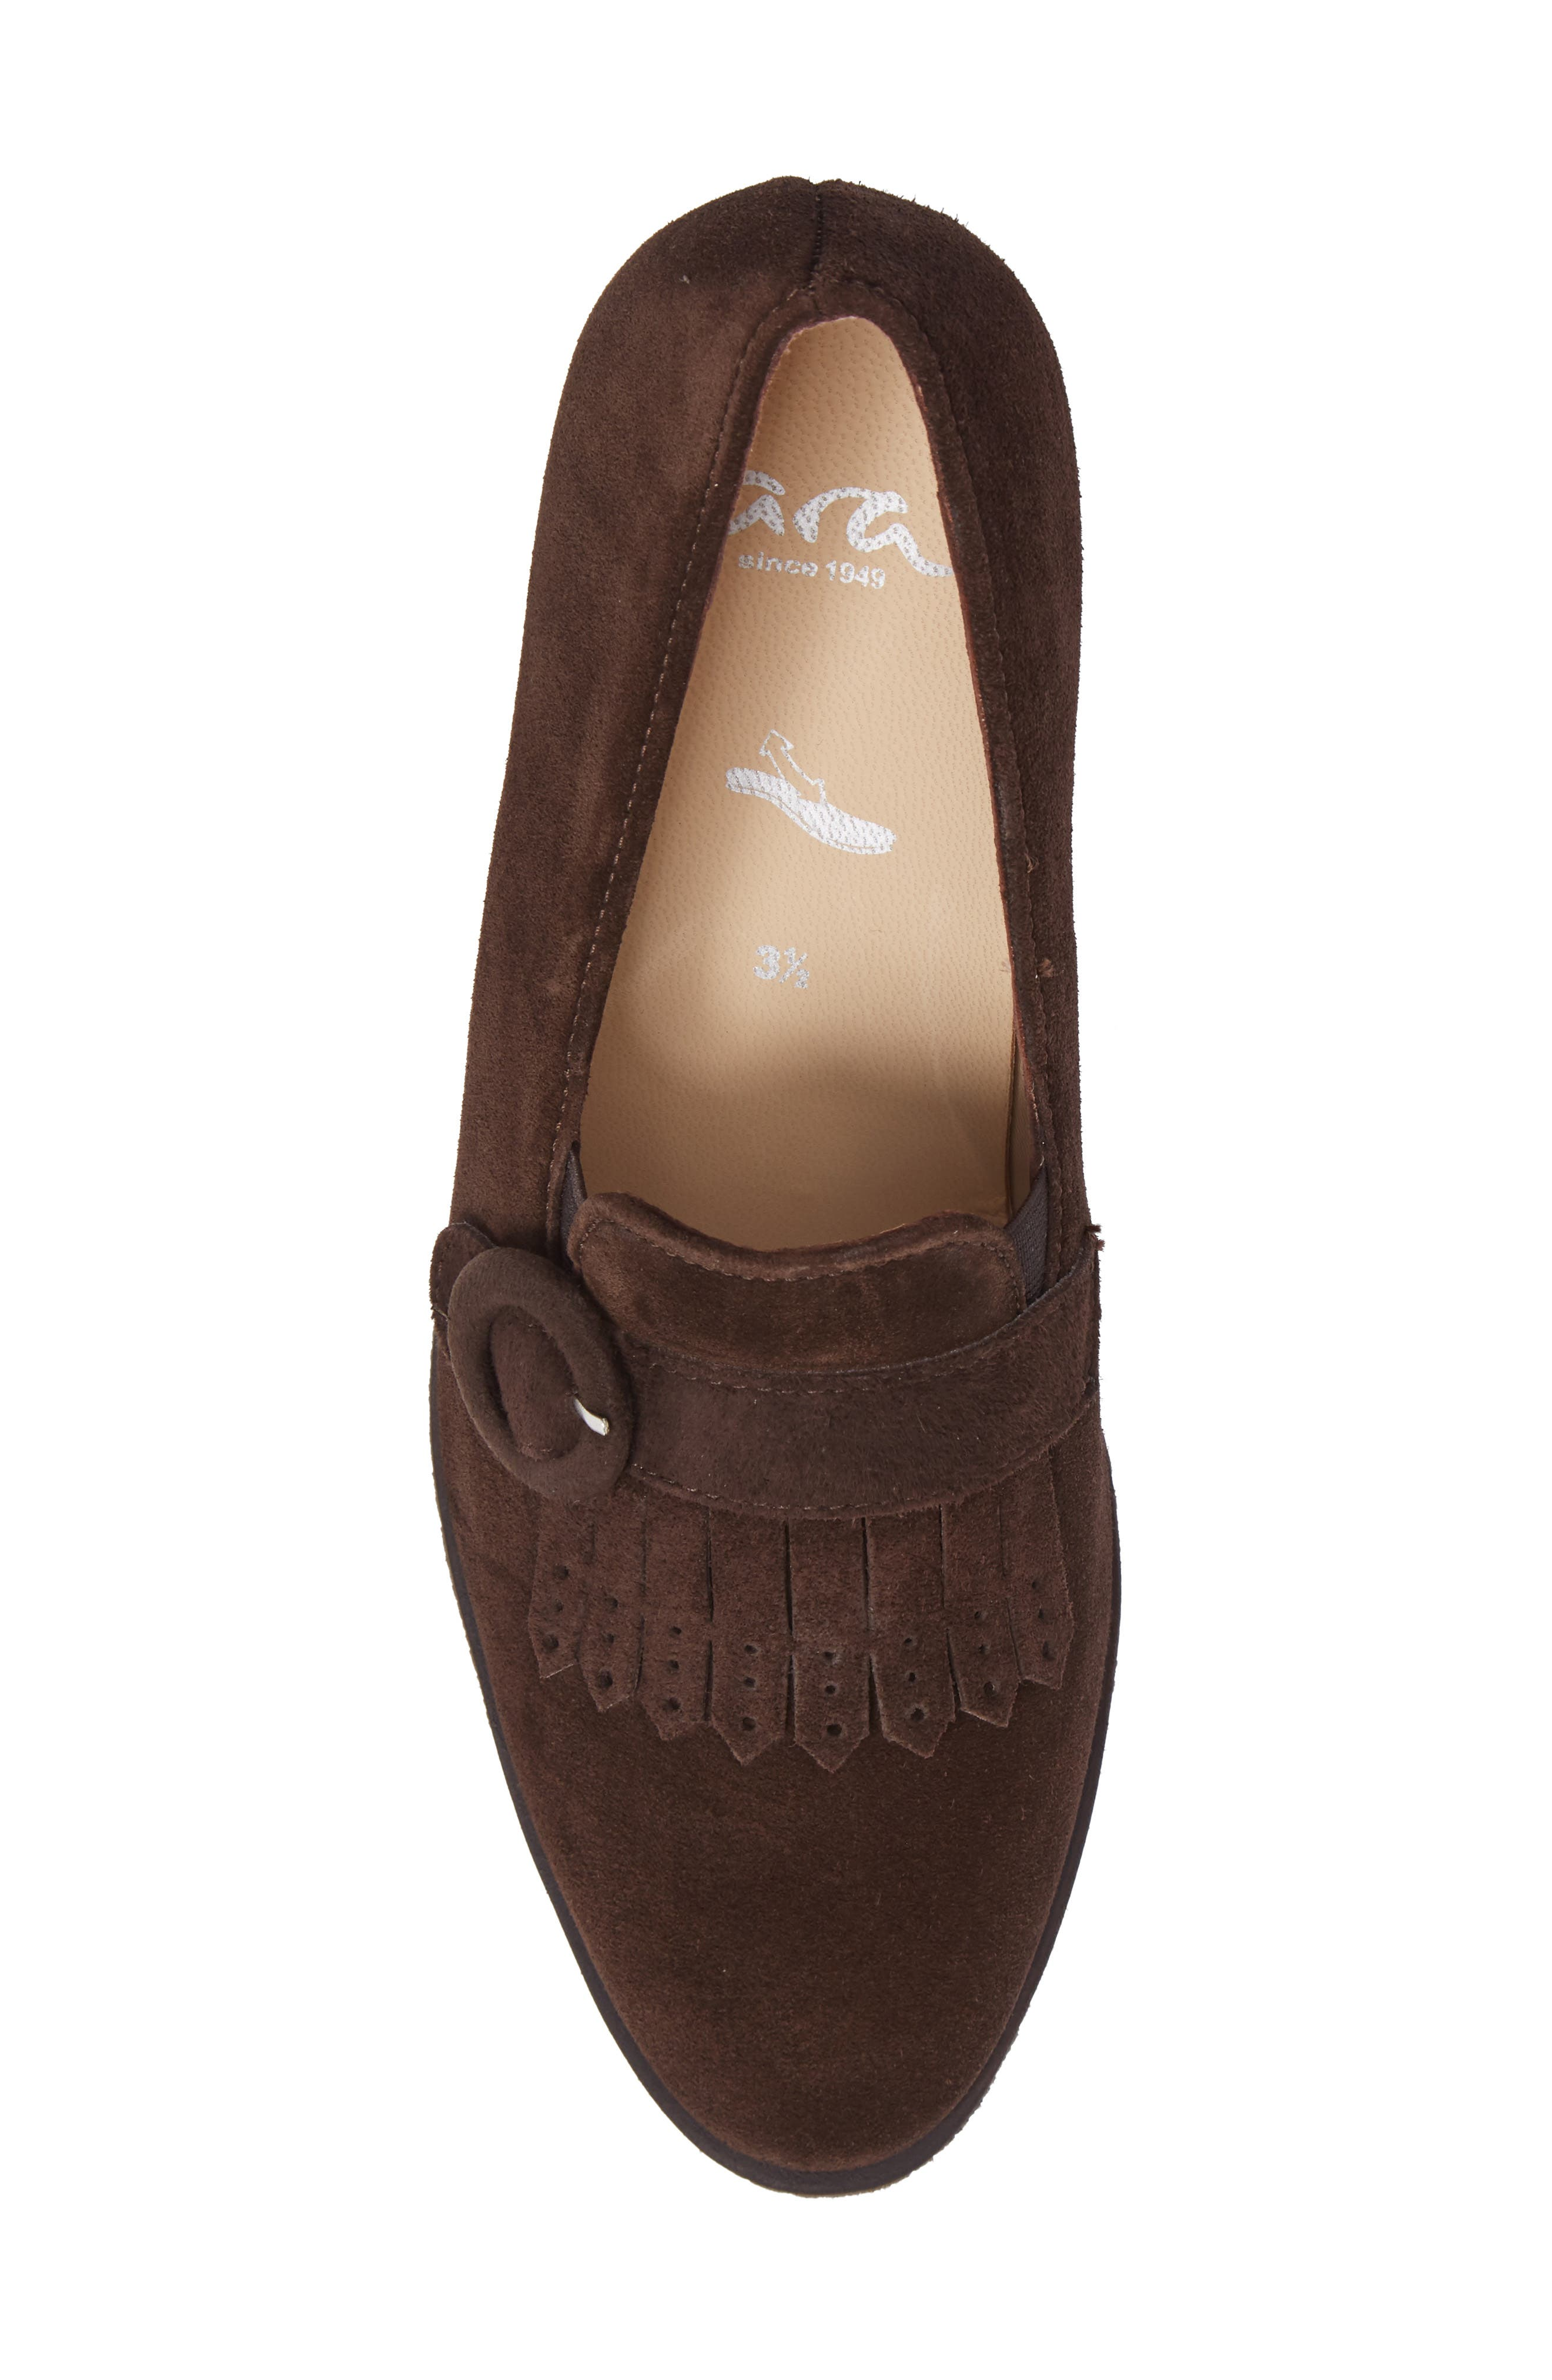 ARA, Becky Loafer Pump, Alternate thumbnail 5, color, BROWN SUEDE